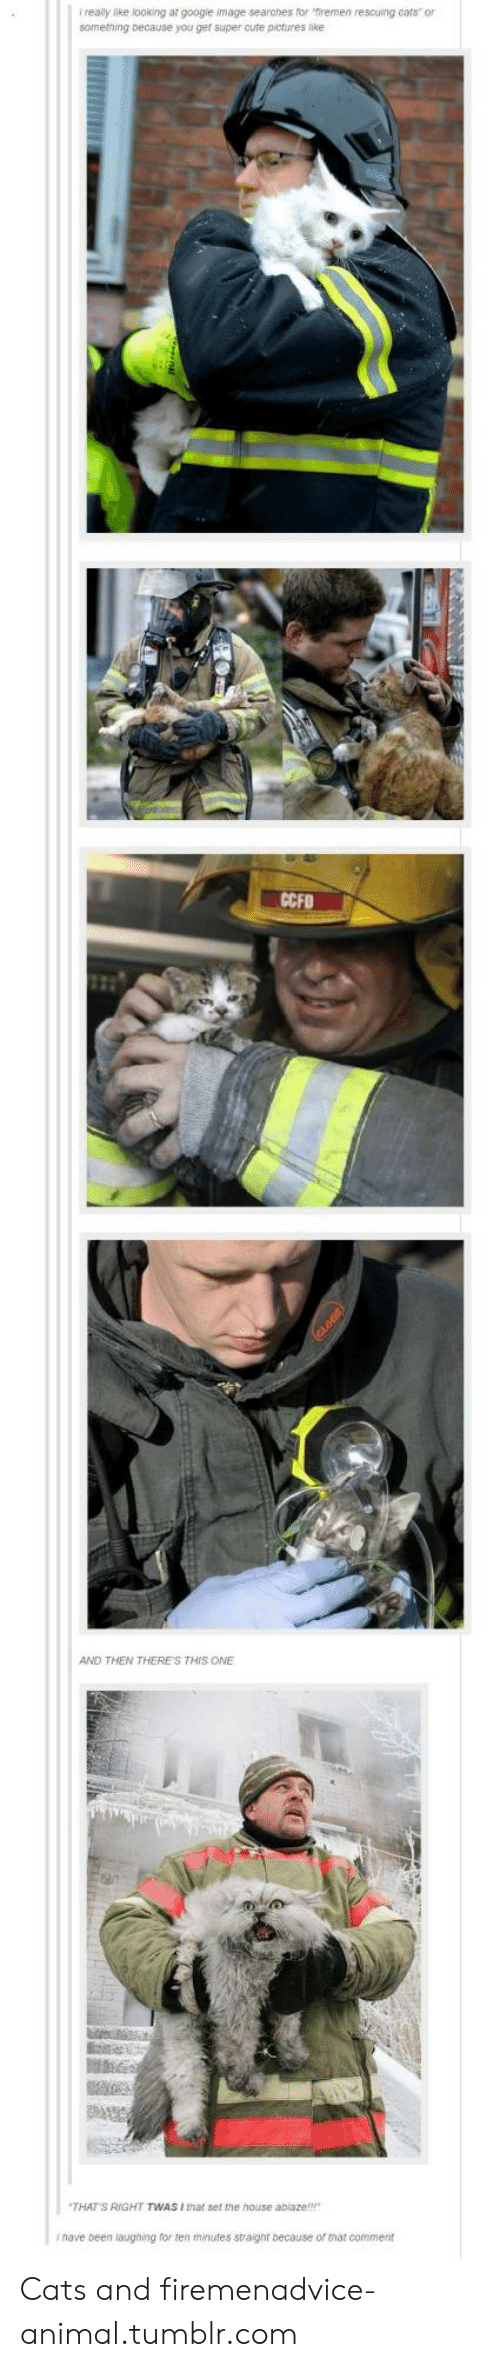 Advice, Cats, and Cute: realy like looking at googie image searches for firemen rescuing cats or  something because you get super cute pictures ike  CCFD  AND THEN THERE'S THIS ONE  THAT S RIGHT TWAS I that set the house ablaze!!  ihave been laughing for ten minutes straight because of that comment Cats and firemenadvice-animal.tumblr.com